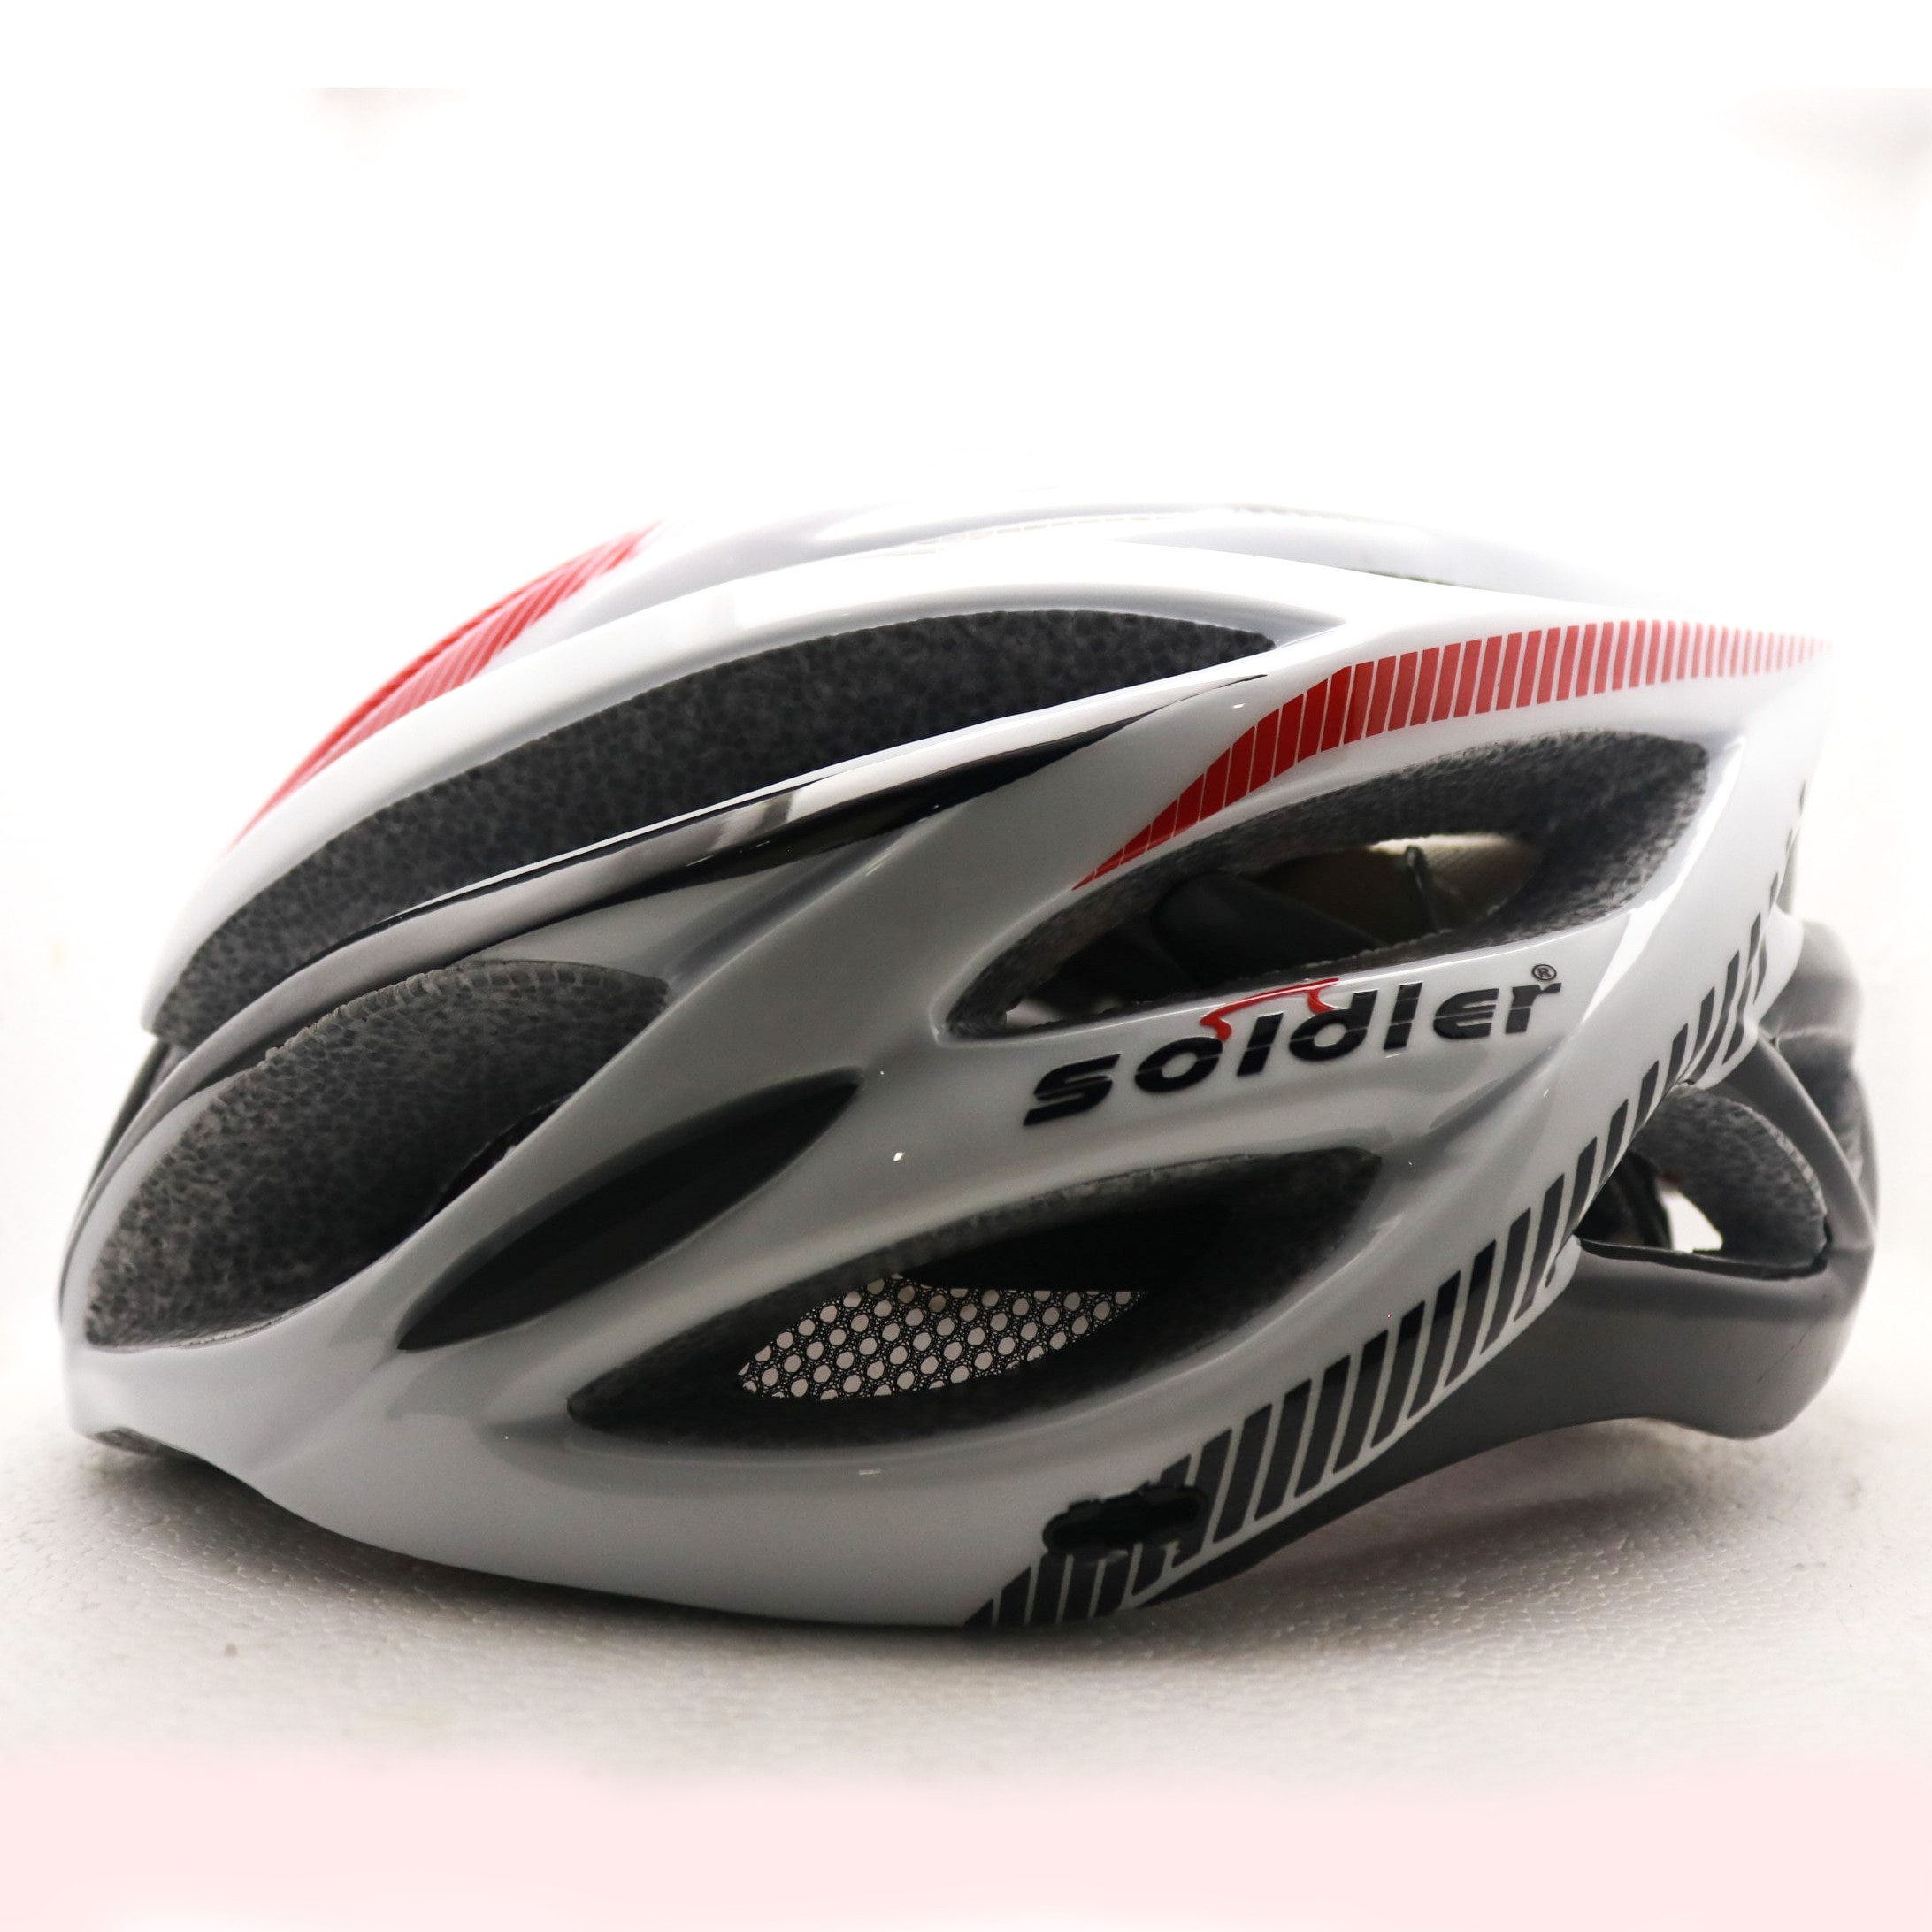 Cycling Helmet - White (Soldier) with LED Light